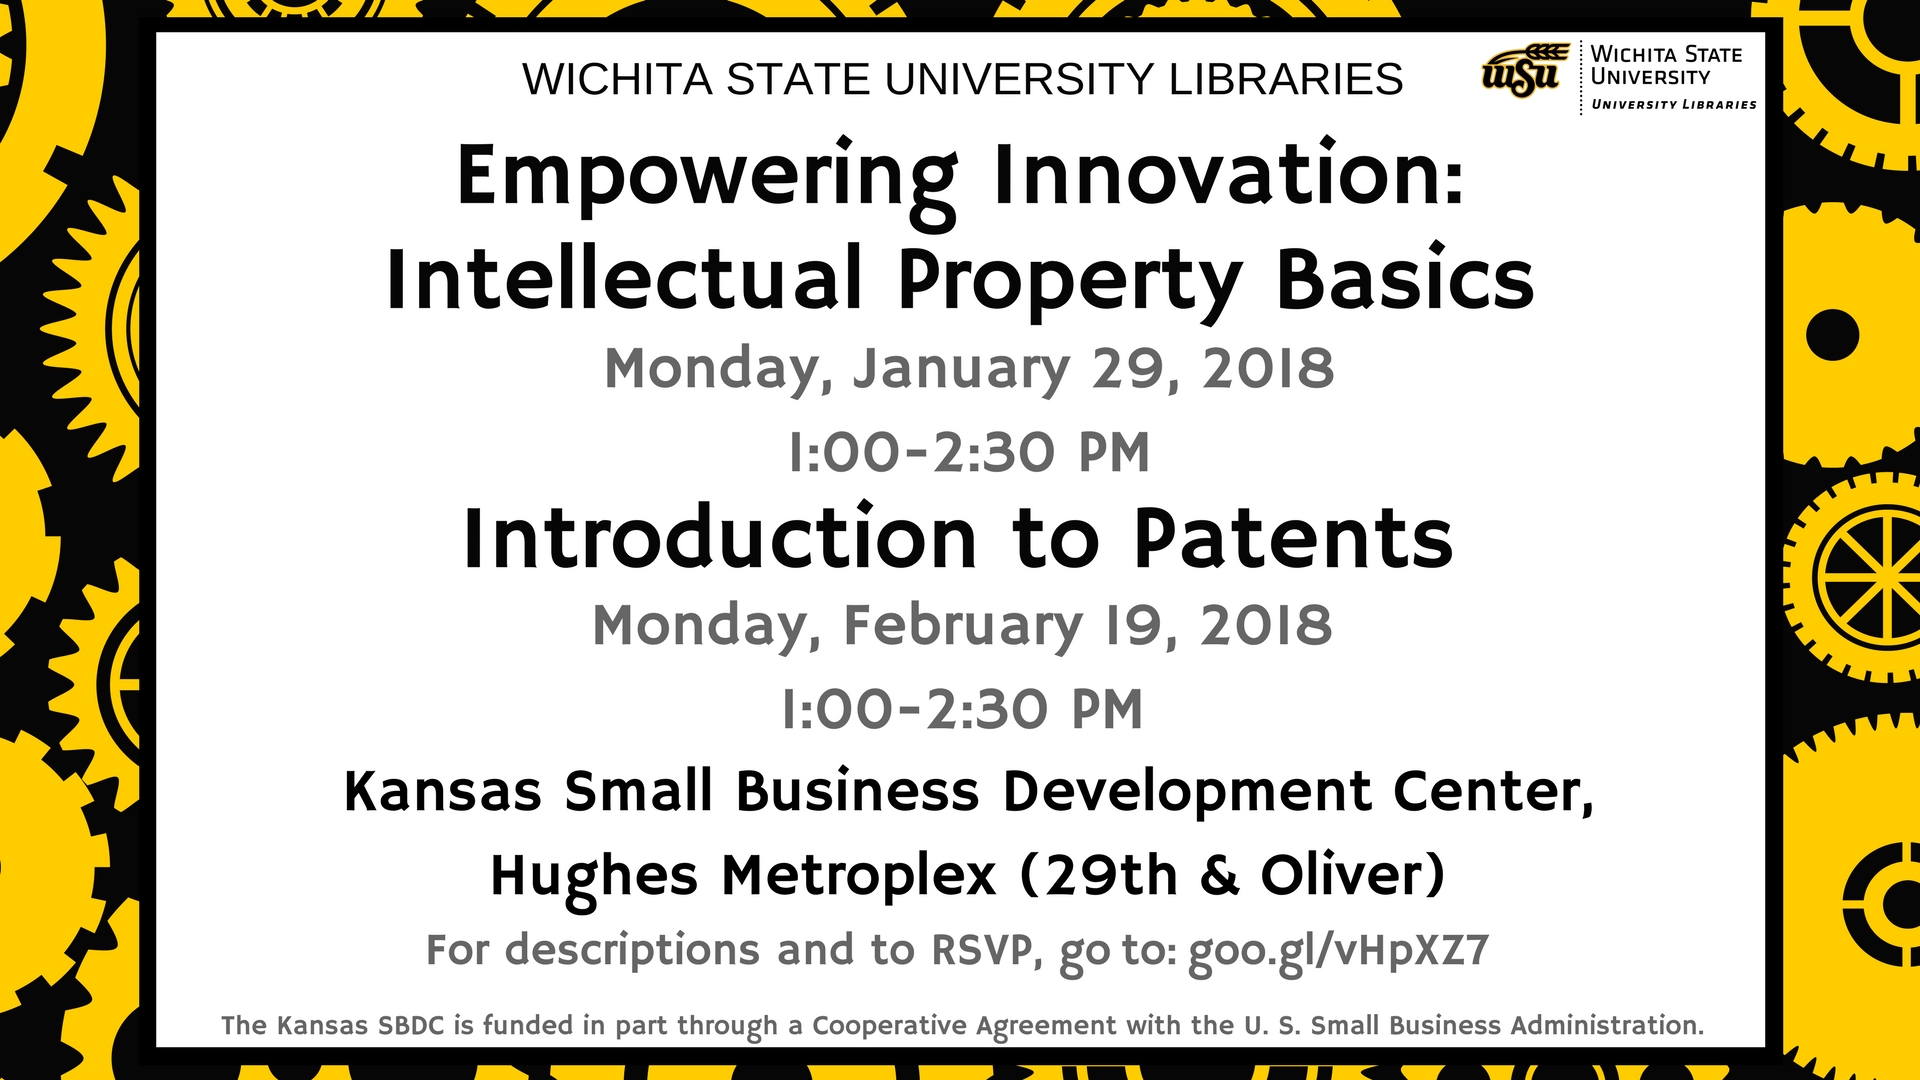 Introduction to Patents